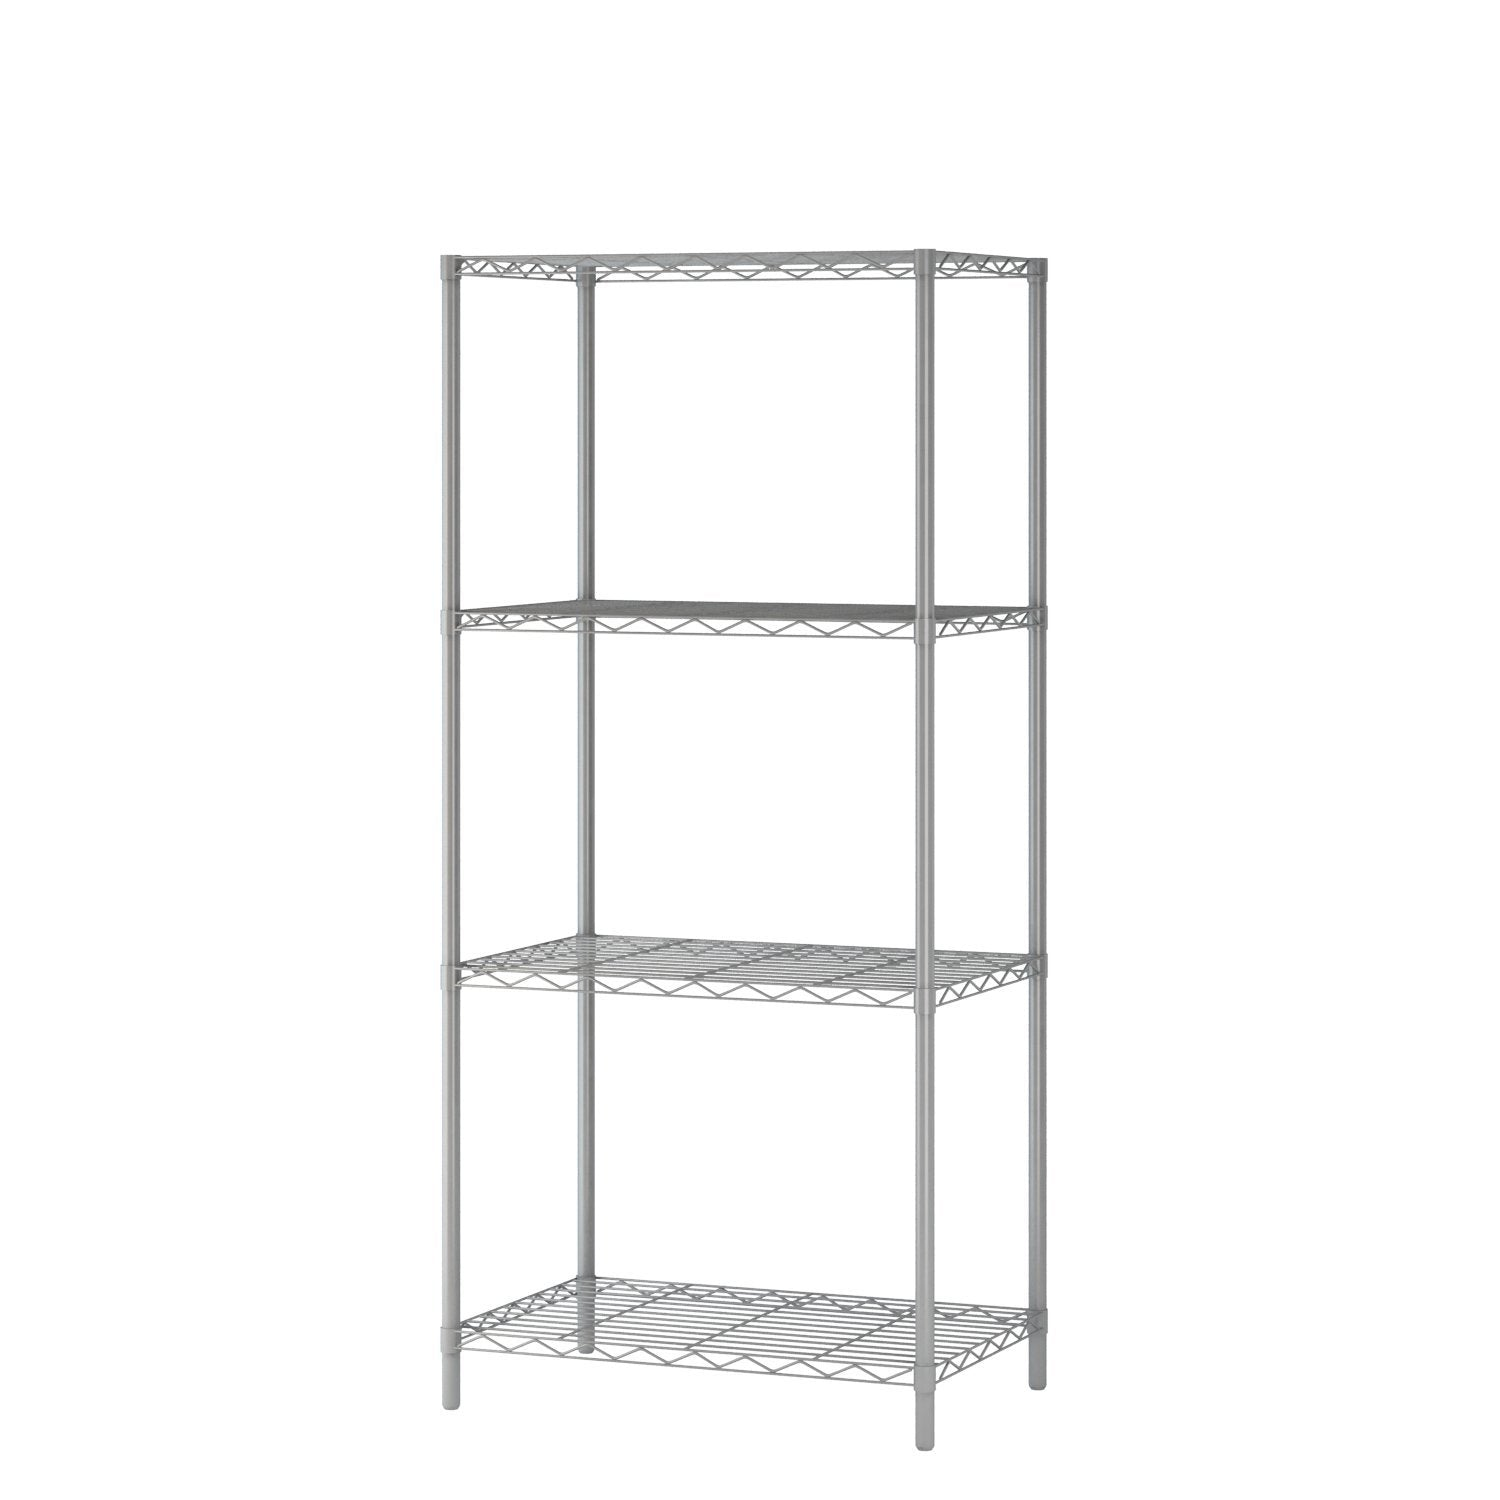 "Homebi 4-Tier Wire Shelving 4 Shelves Unit Metal Storage Rack Durable Organizer Perfect for Pantry Closet Kitchen Laundry Organization in Grey,21""Wx14""Dx46.5""H"